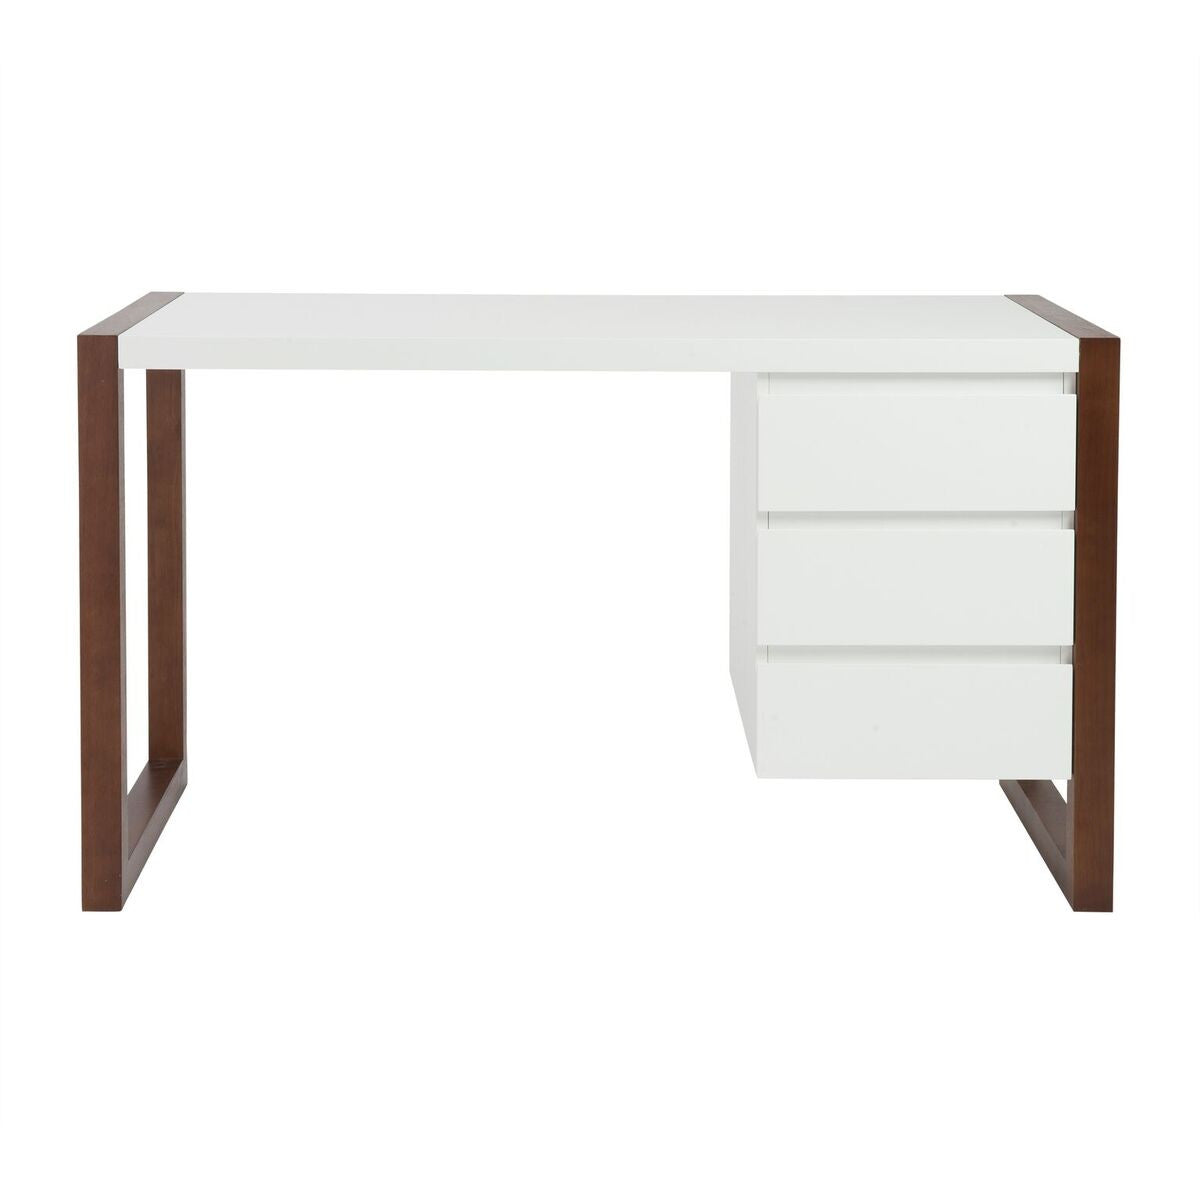 Image of: 51 White Walnut Desk With Drawers By Euro Style Officedesk Com